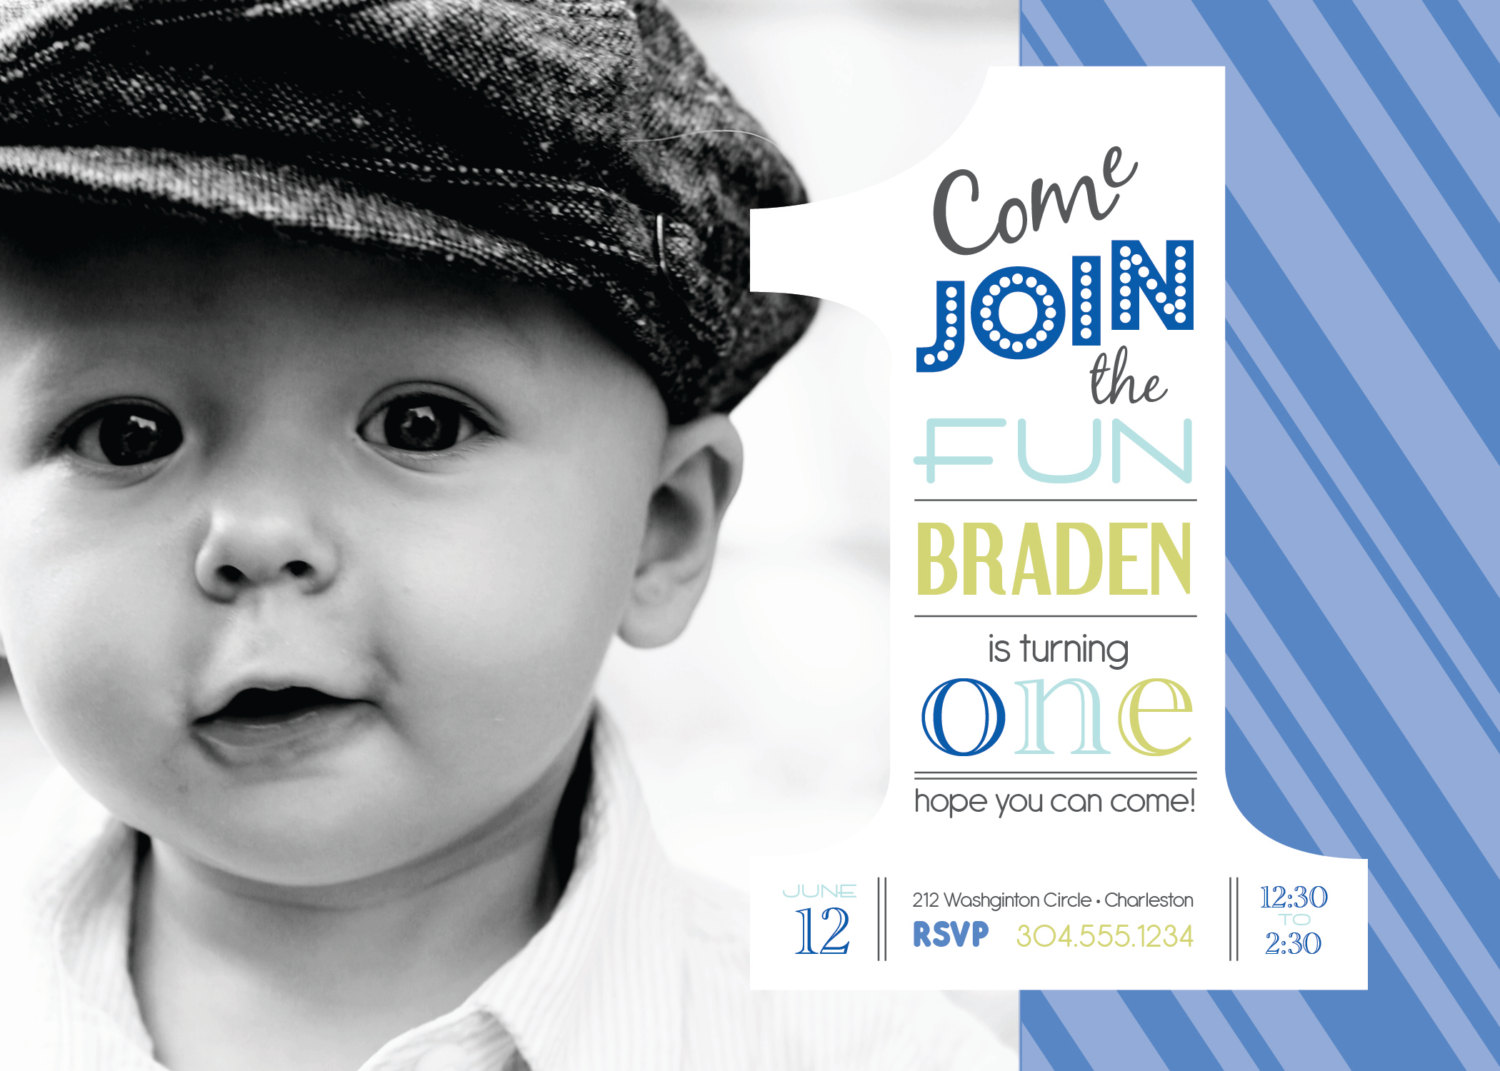 1st birthday invitation card design ; boy-1st-birthday-invitations-for-invitations-may-inspire-you-to-create-great-invitation-ideas-3